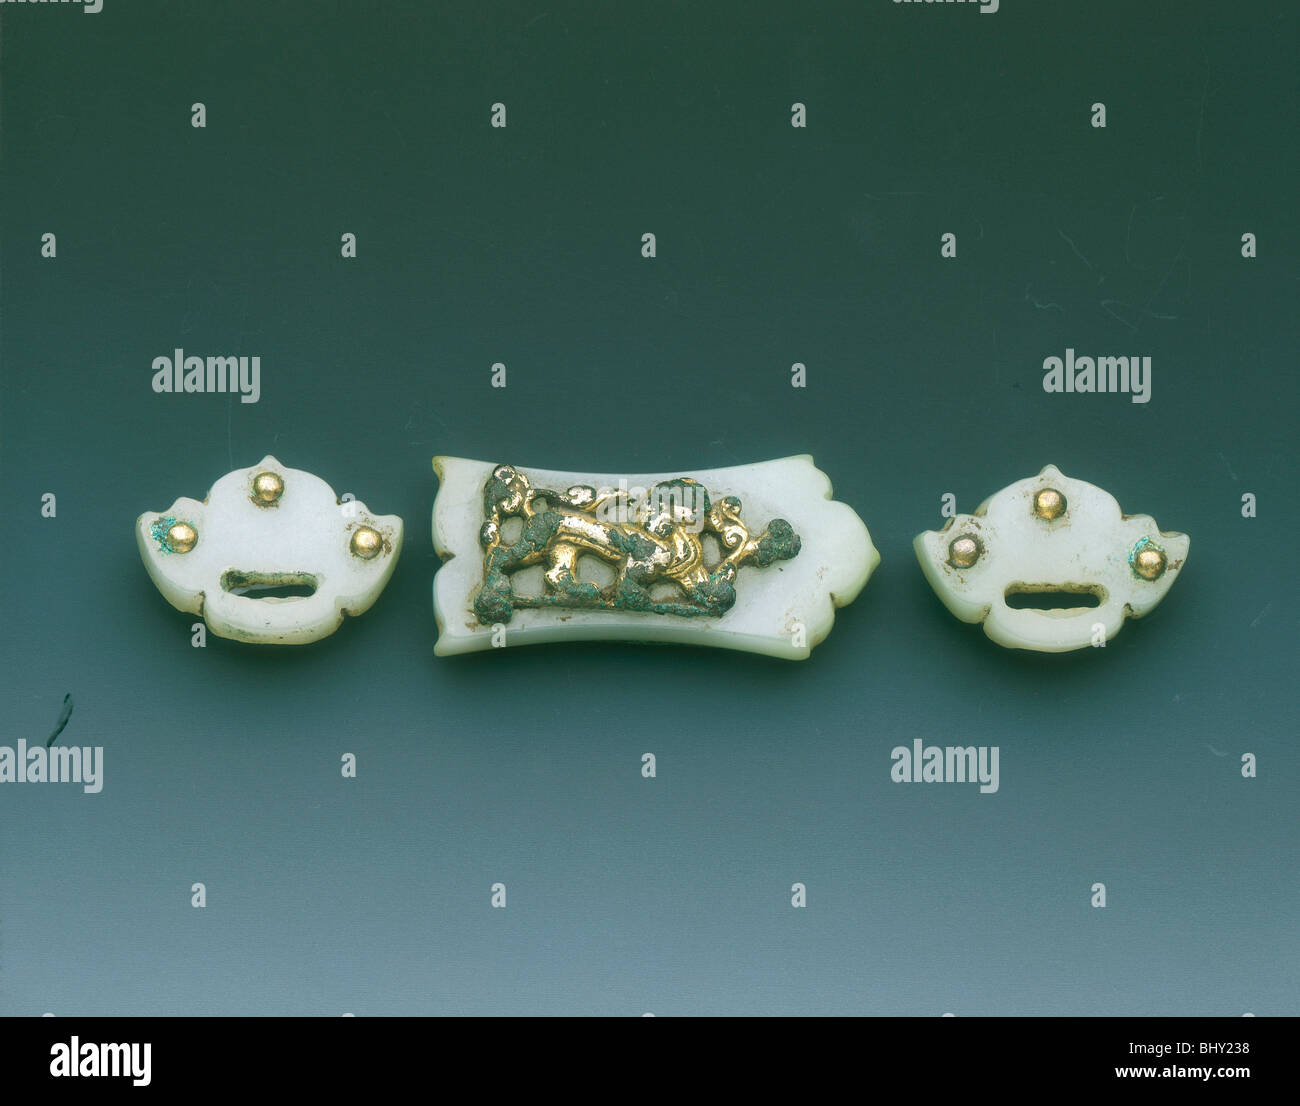 Gilt-bronze mounted group of three jade belt fittings, Liao dynasty or earlier, China, c907-1125. - Stock Image